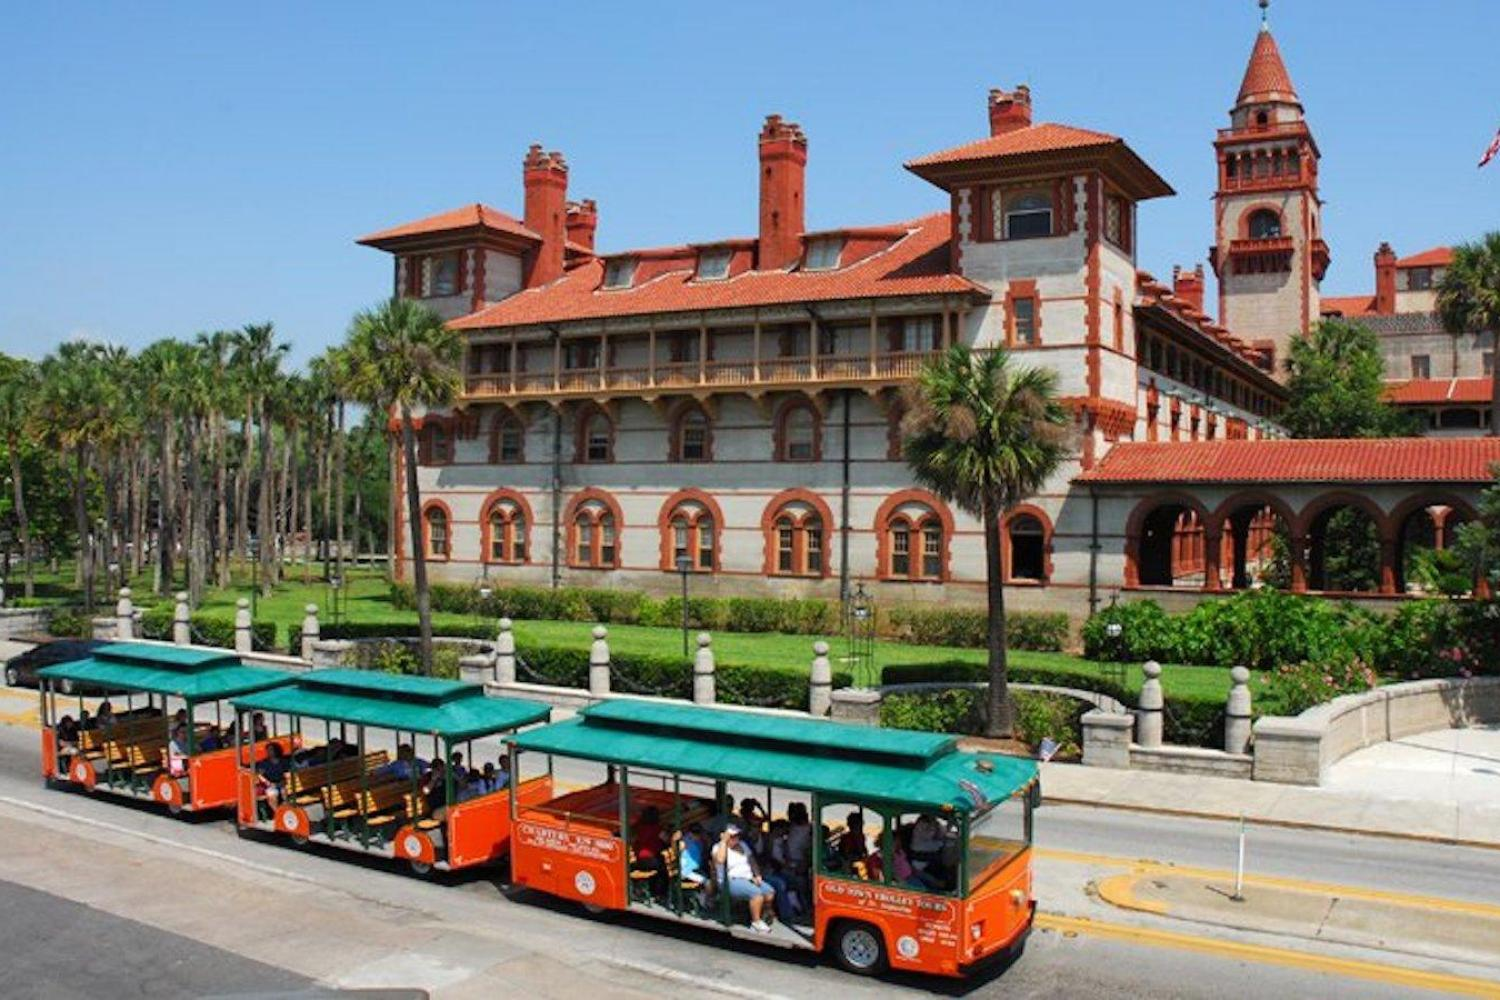 Trolley Tour of St. Augustine